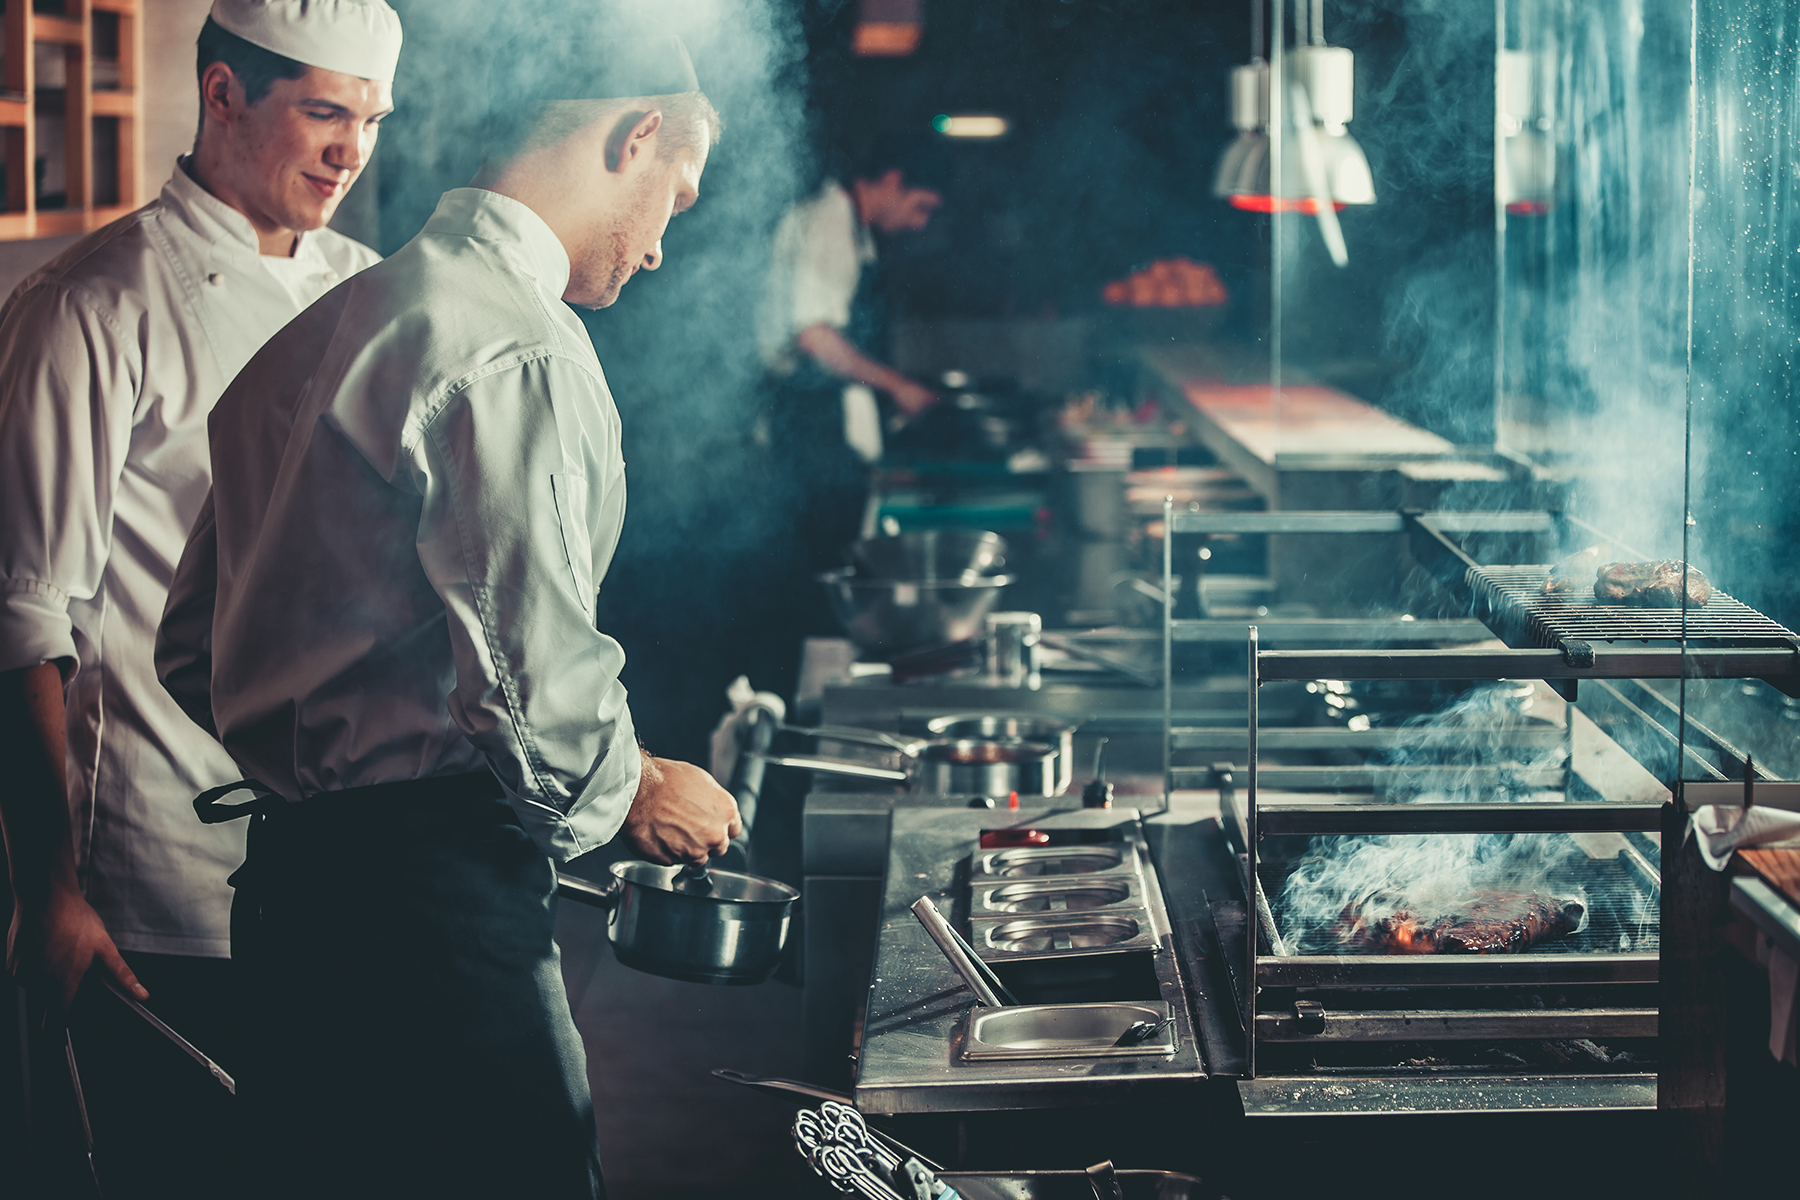 Professional chefs cooking in a commercial kitchen